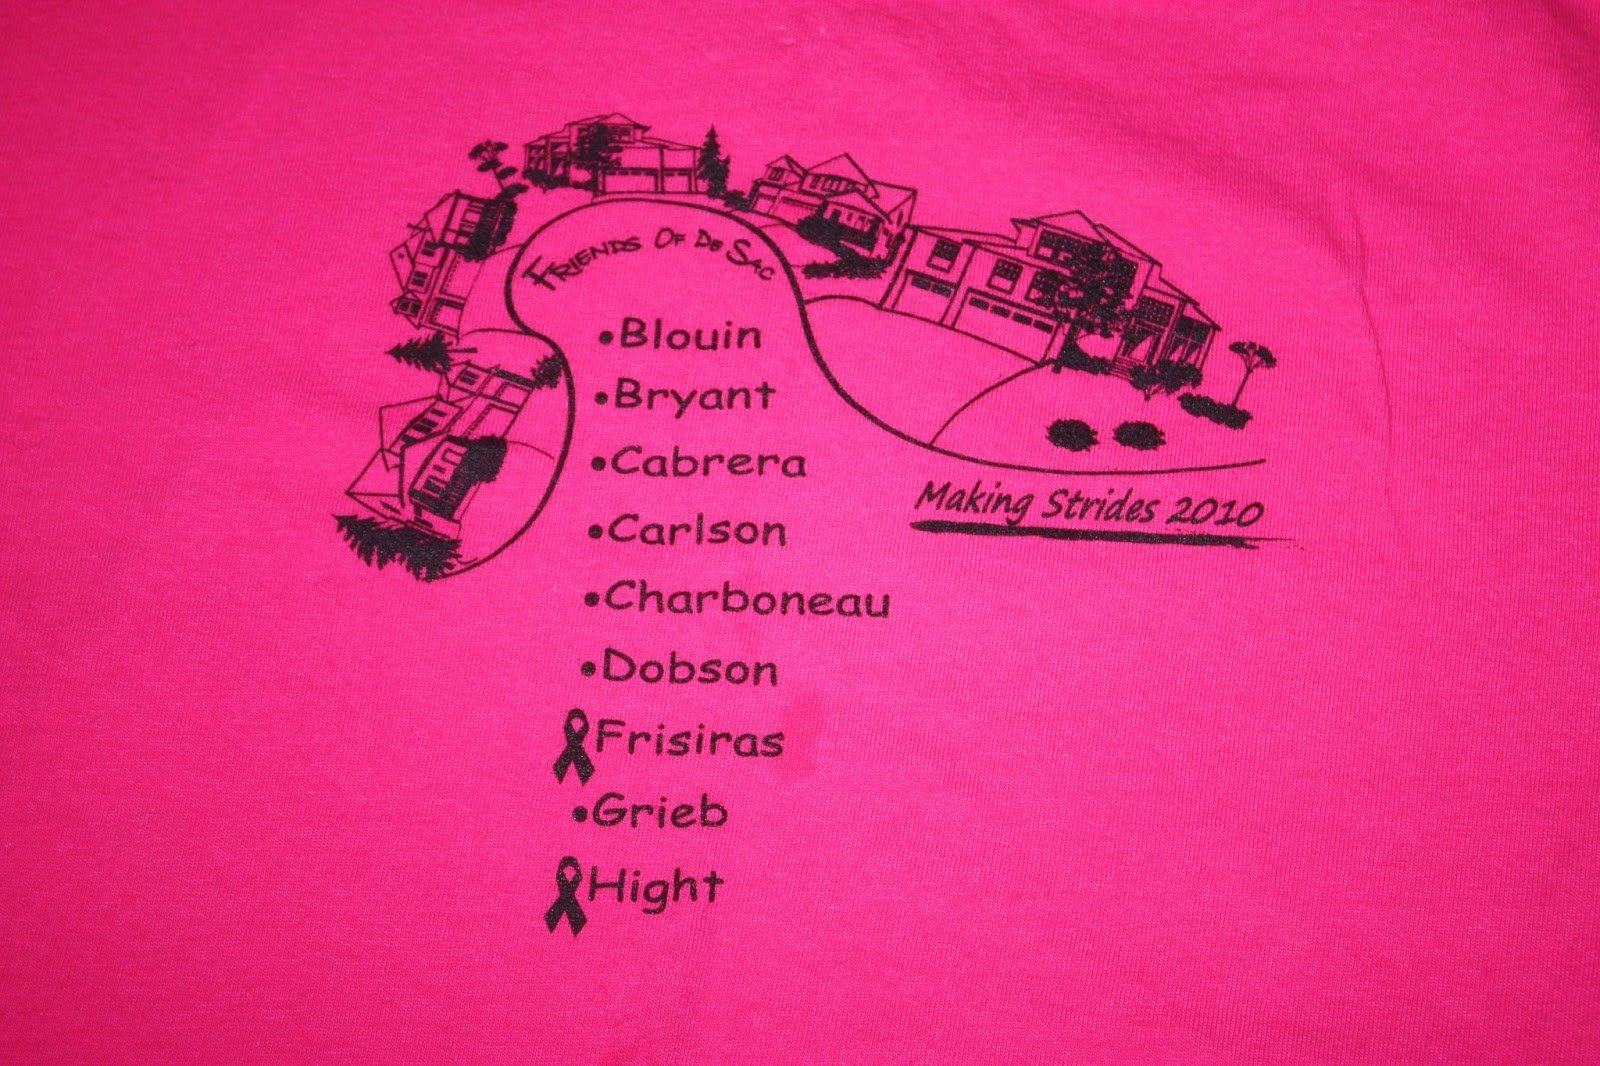 10 Lovely Breast Cancer Team Name Ideas custom breast cancer awareness t shirt amgarboiprom47s soup 2020